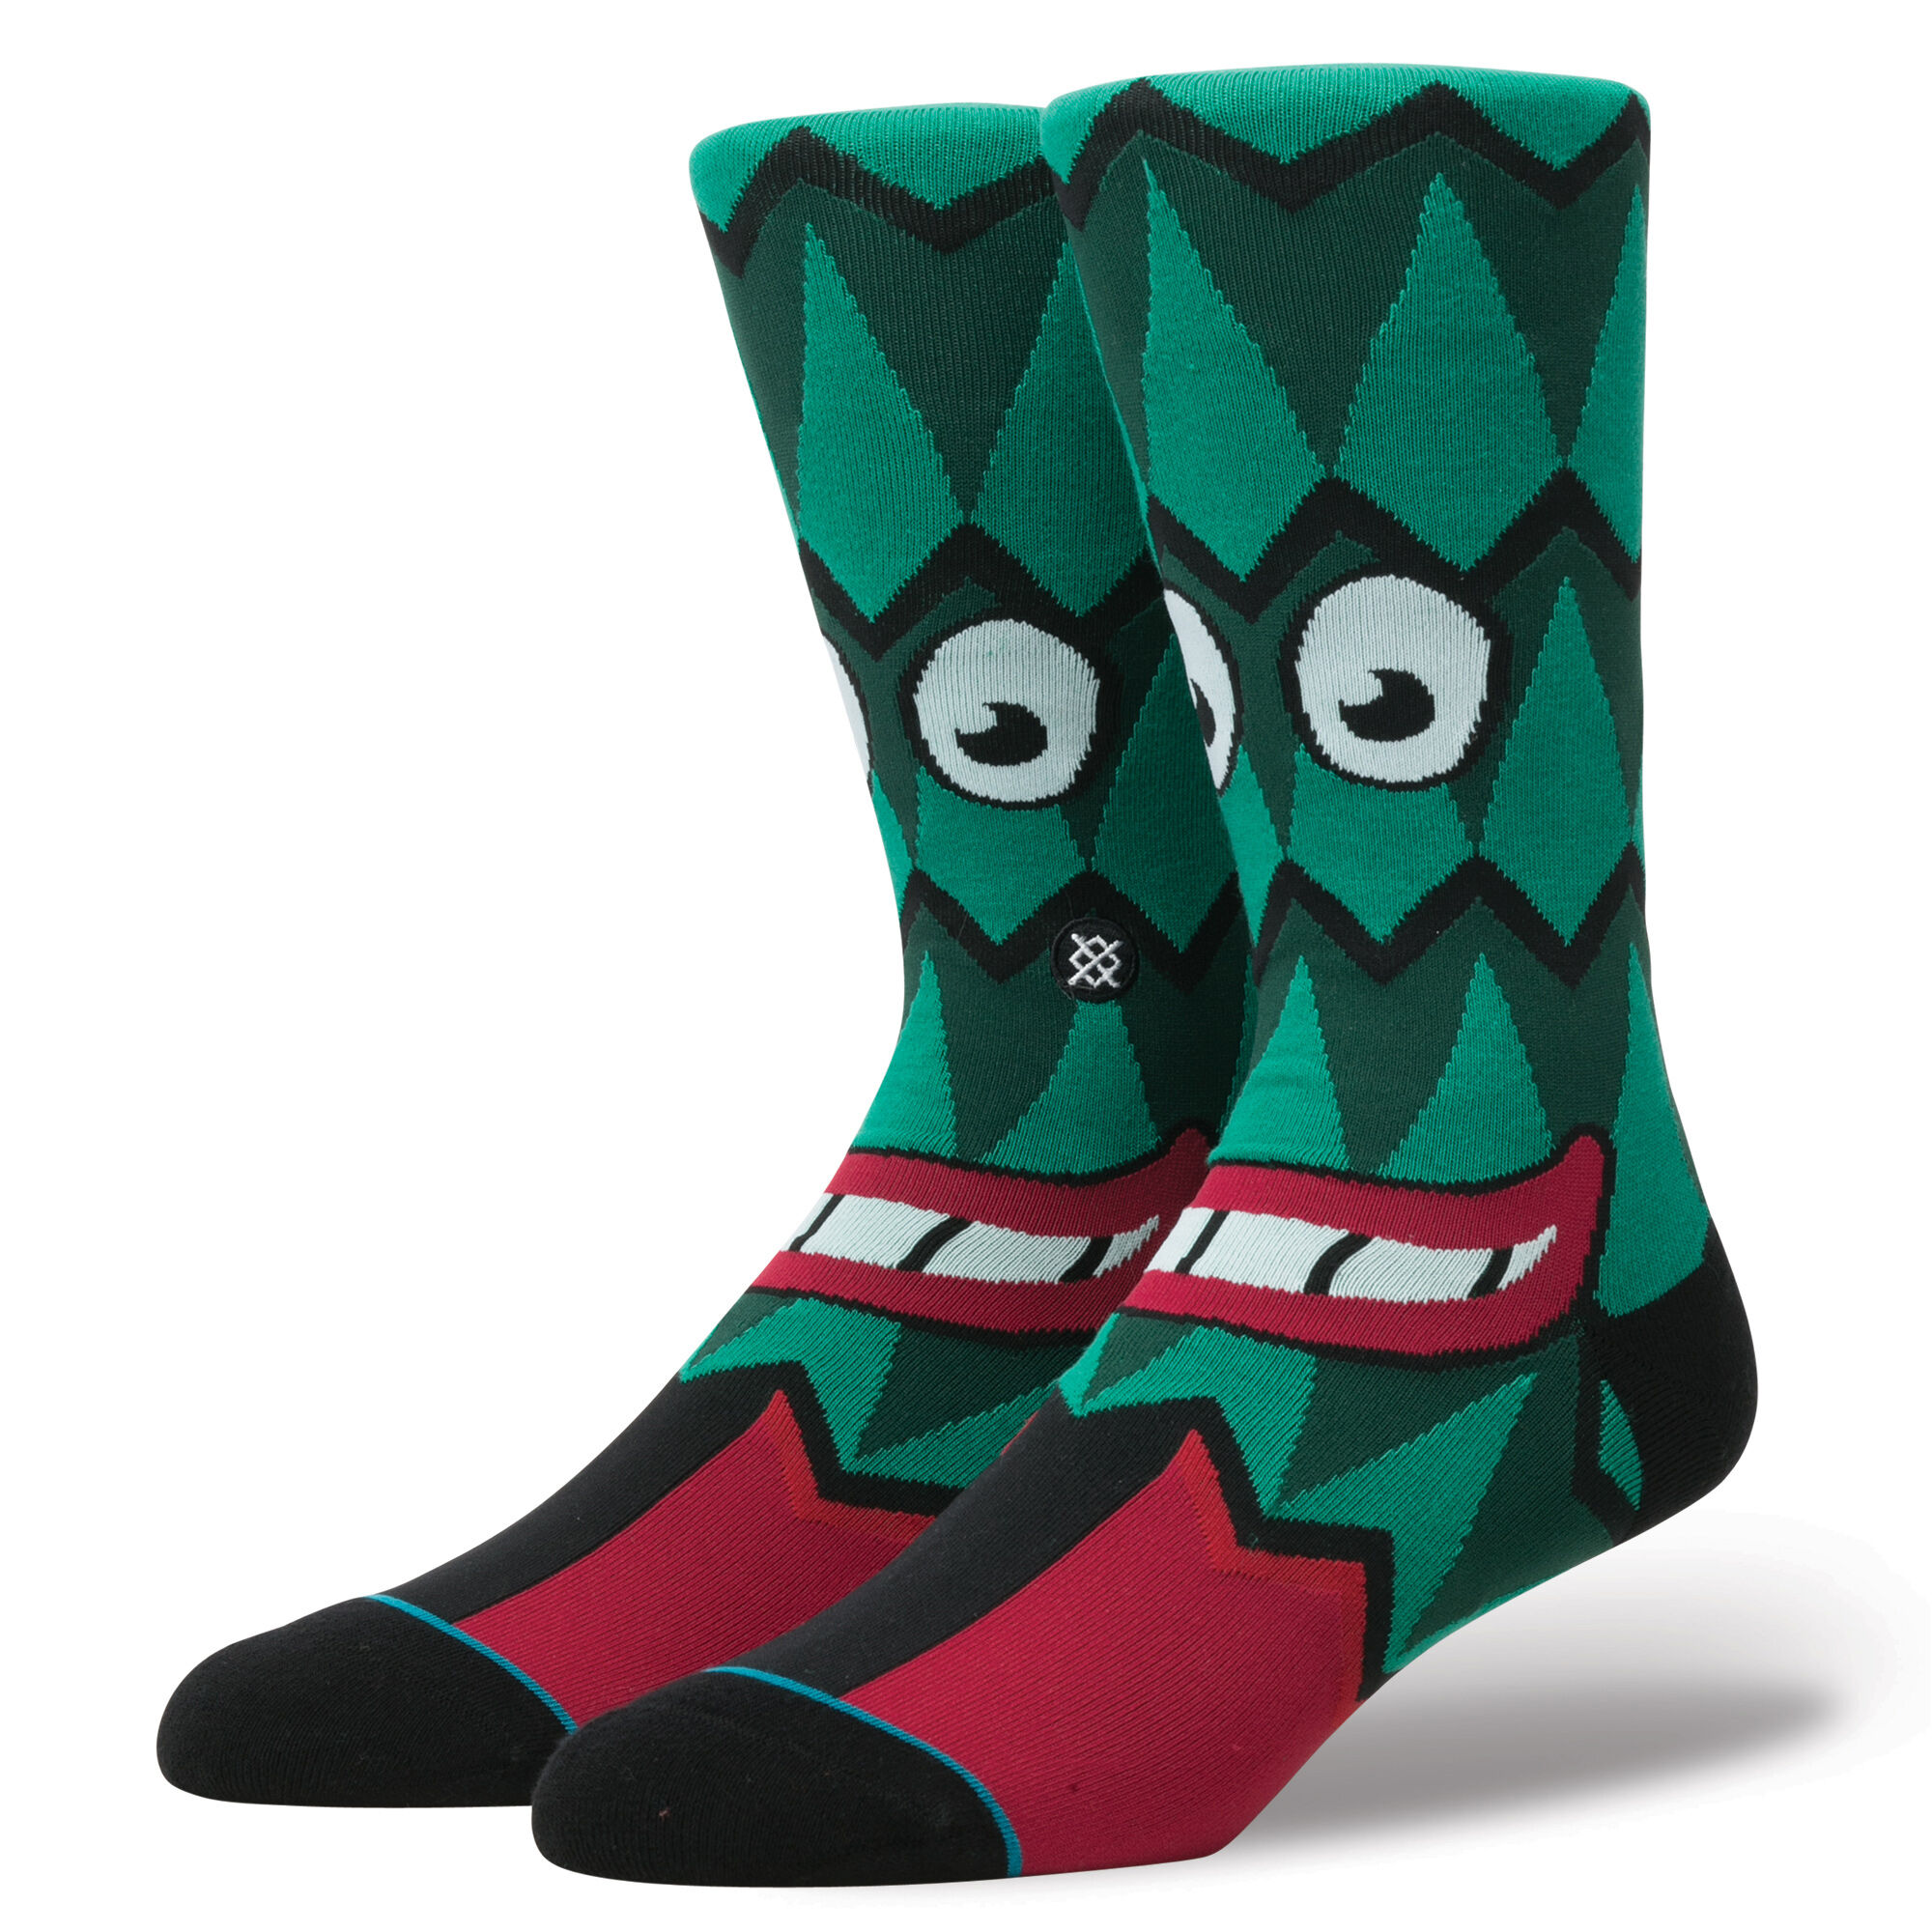 Stanford Tree - Mens College Mascot Socks | Stance | 2000 x 2000 jpeg 494kB